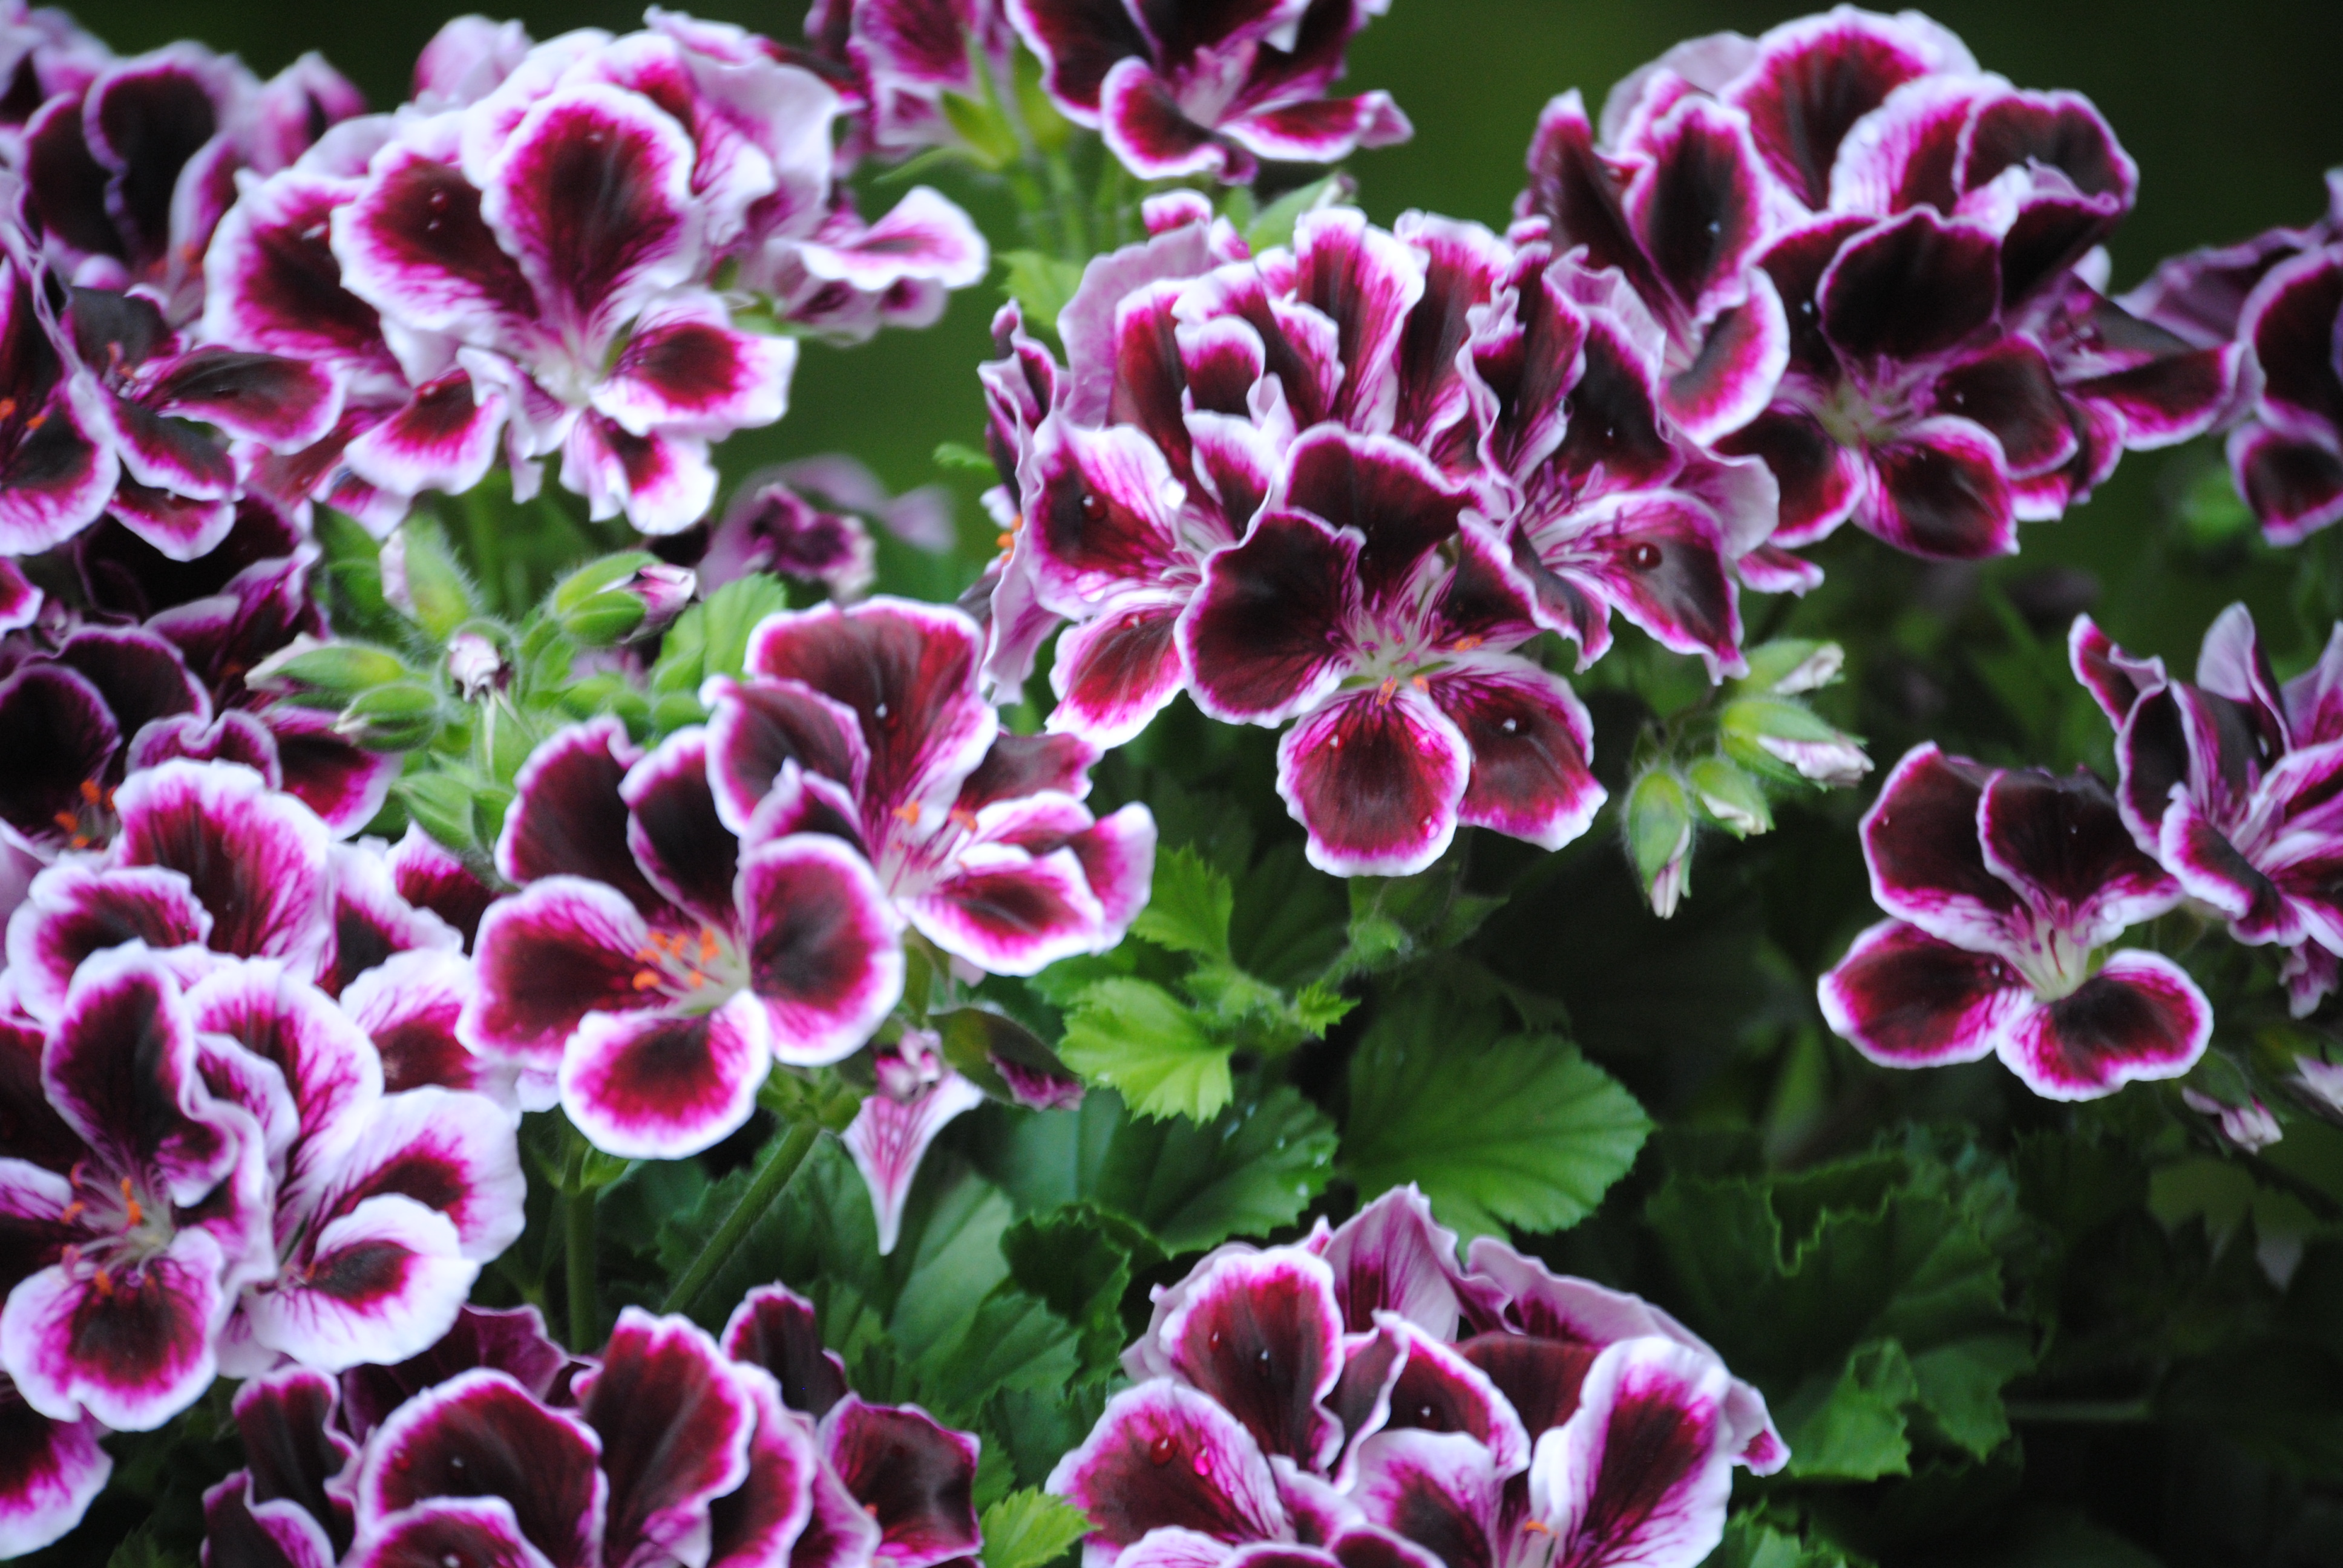 All Parts Of The Geranium Are Toxic To Dogs And